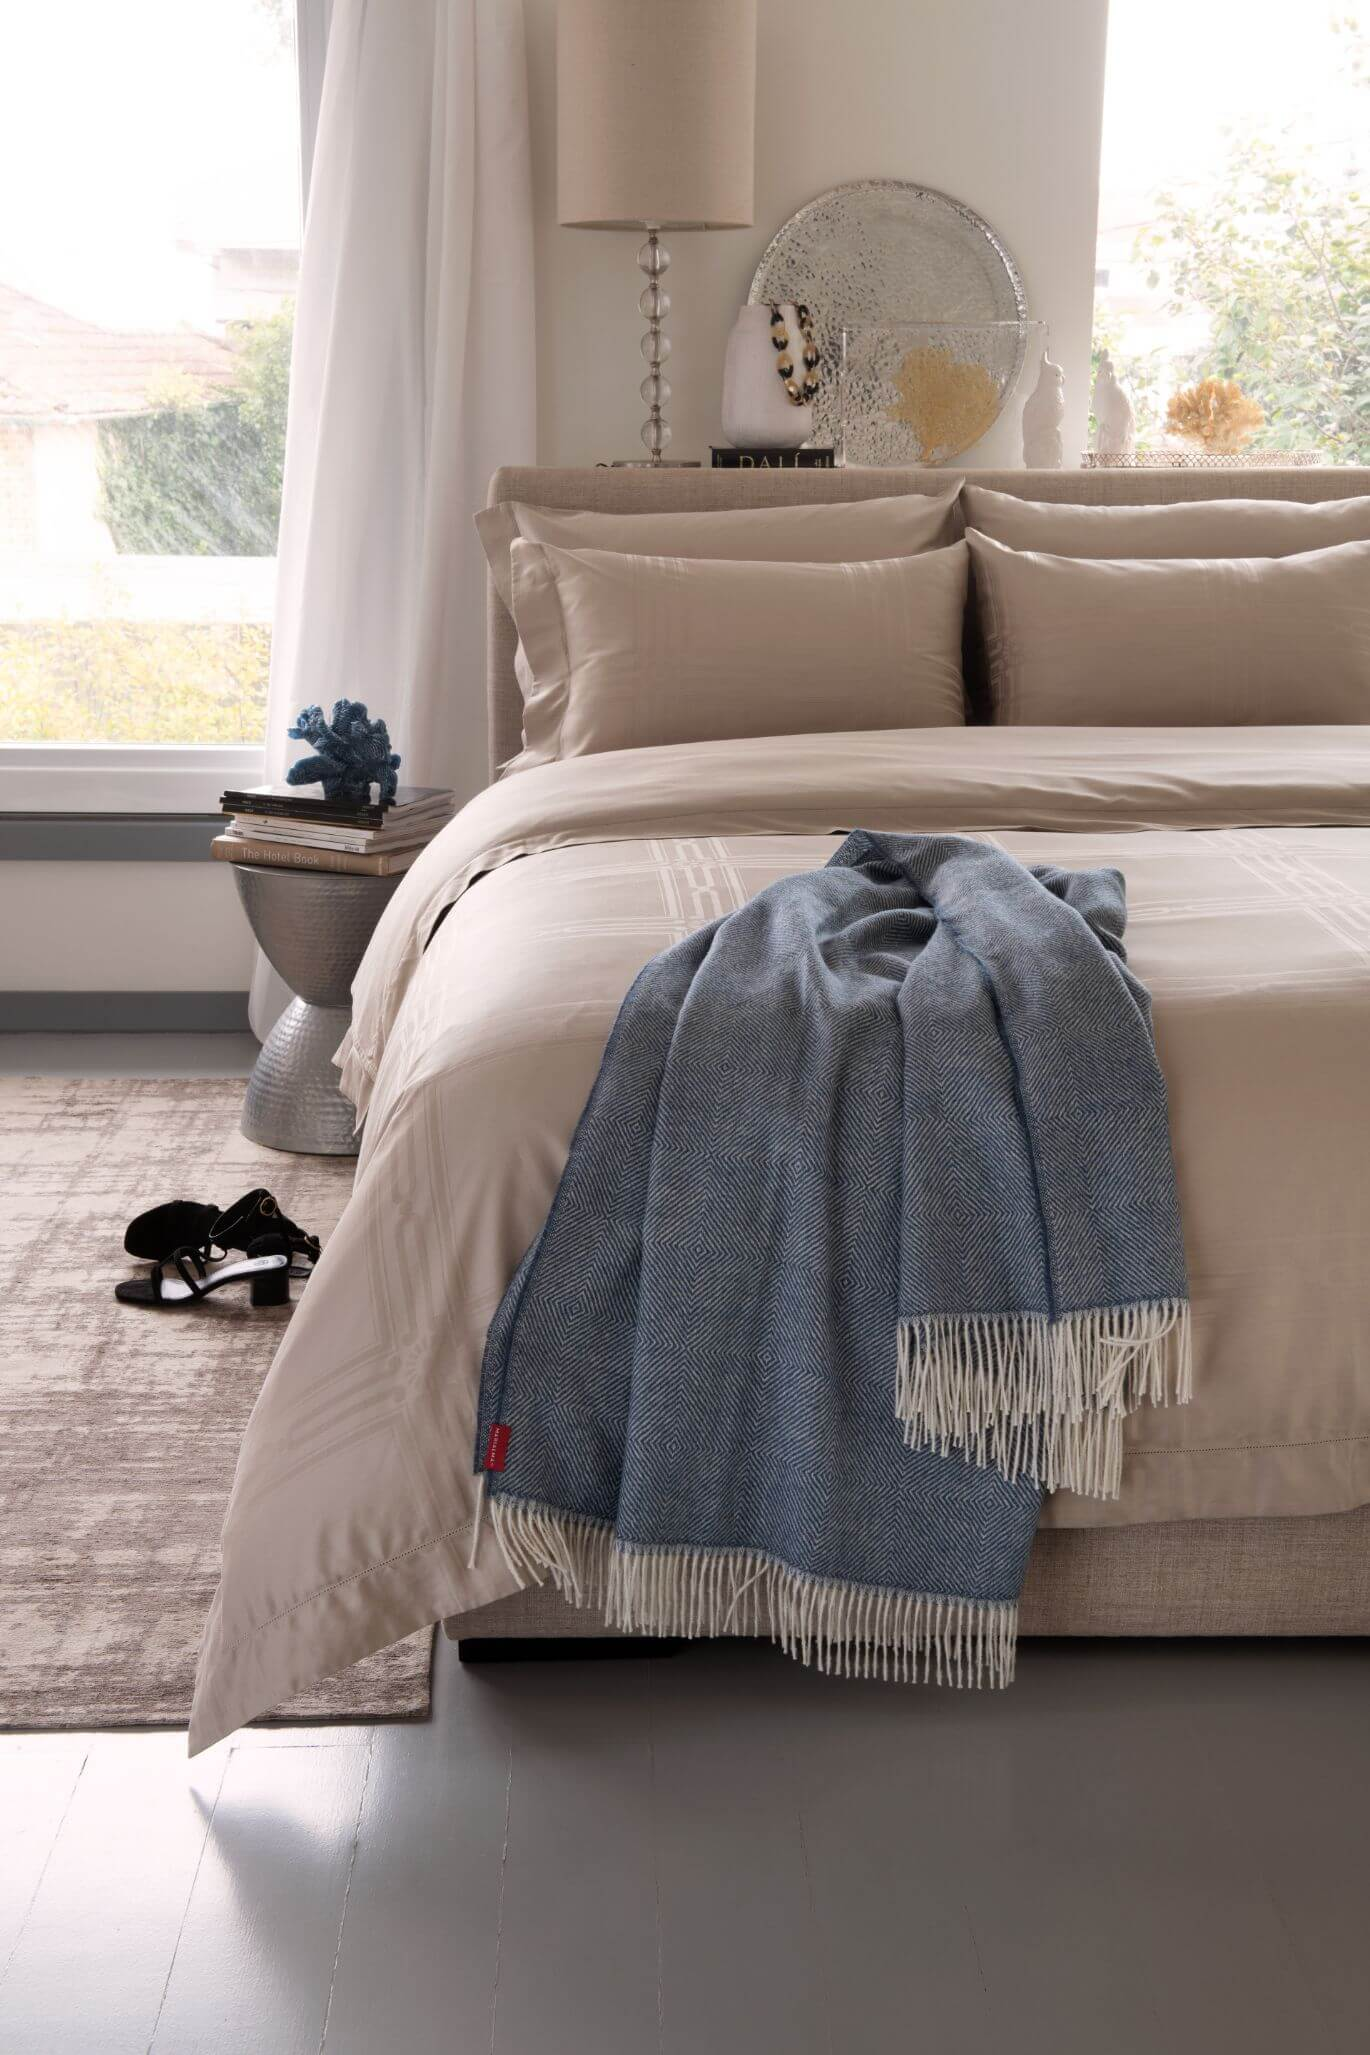 Marialma's bed sheets in Behr Creamy Mushroom